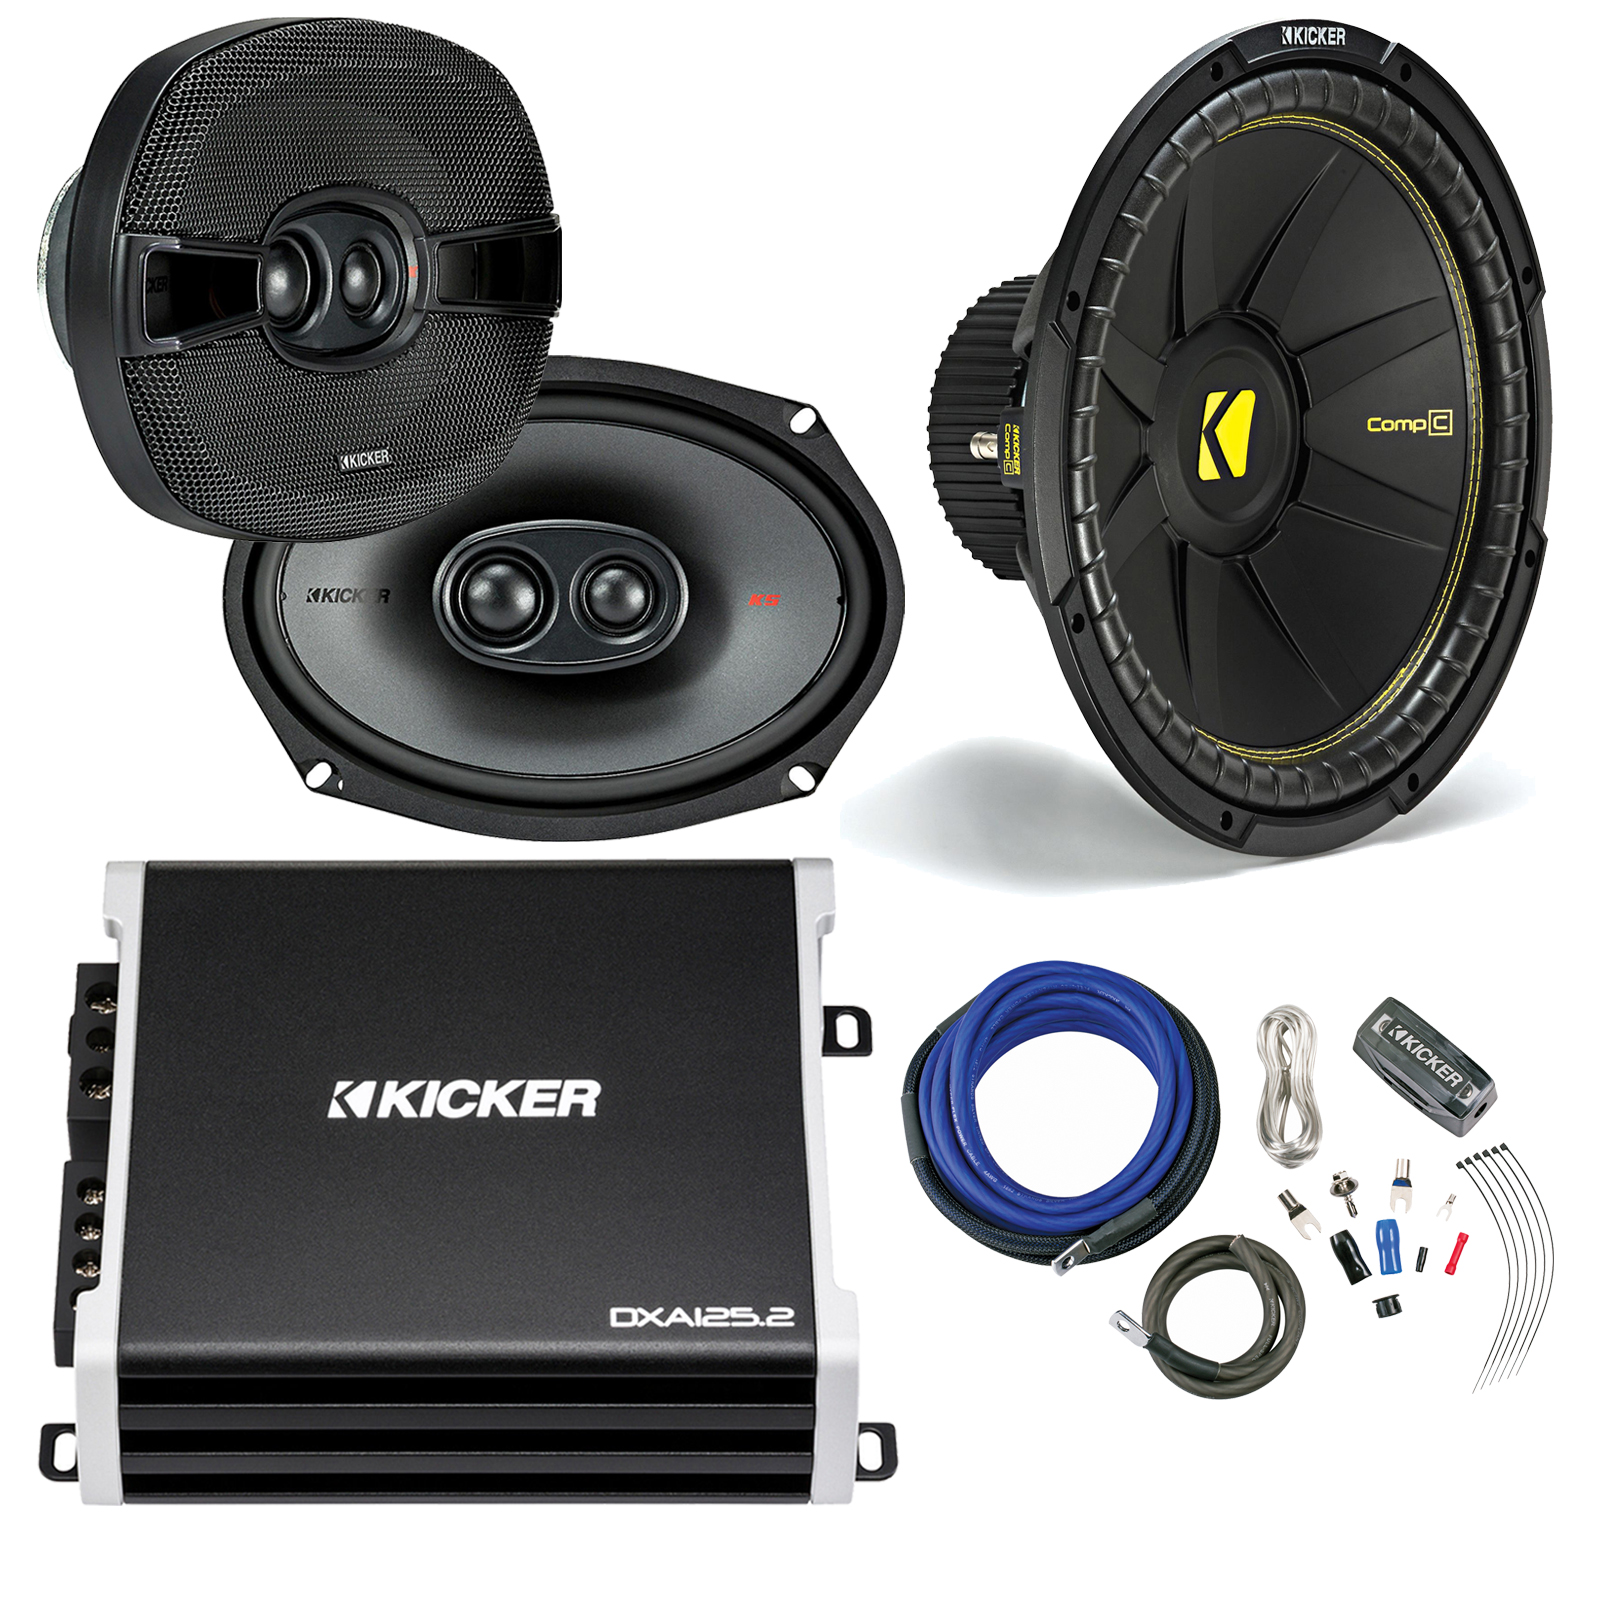 Vehicle Sound Box Connected Amplifier Wiring kit 4 Guage 2800W Car Audio Subwoofer Amplifier Speaker Installation Wire Cable Kit Fuse Suit